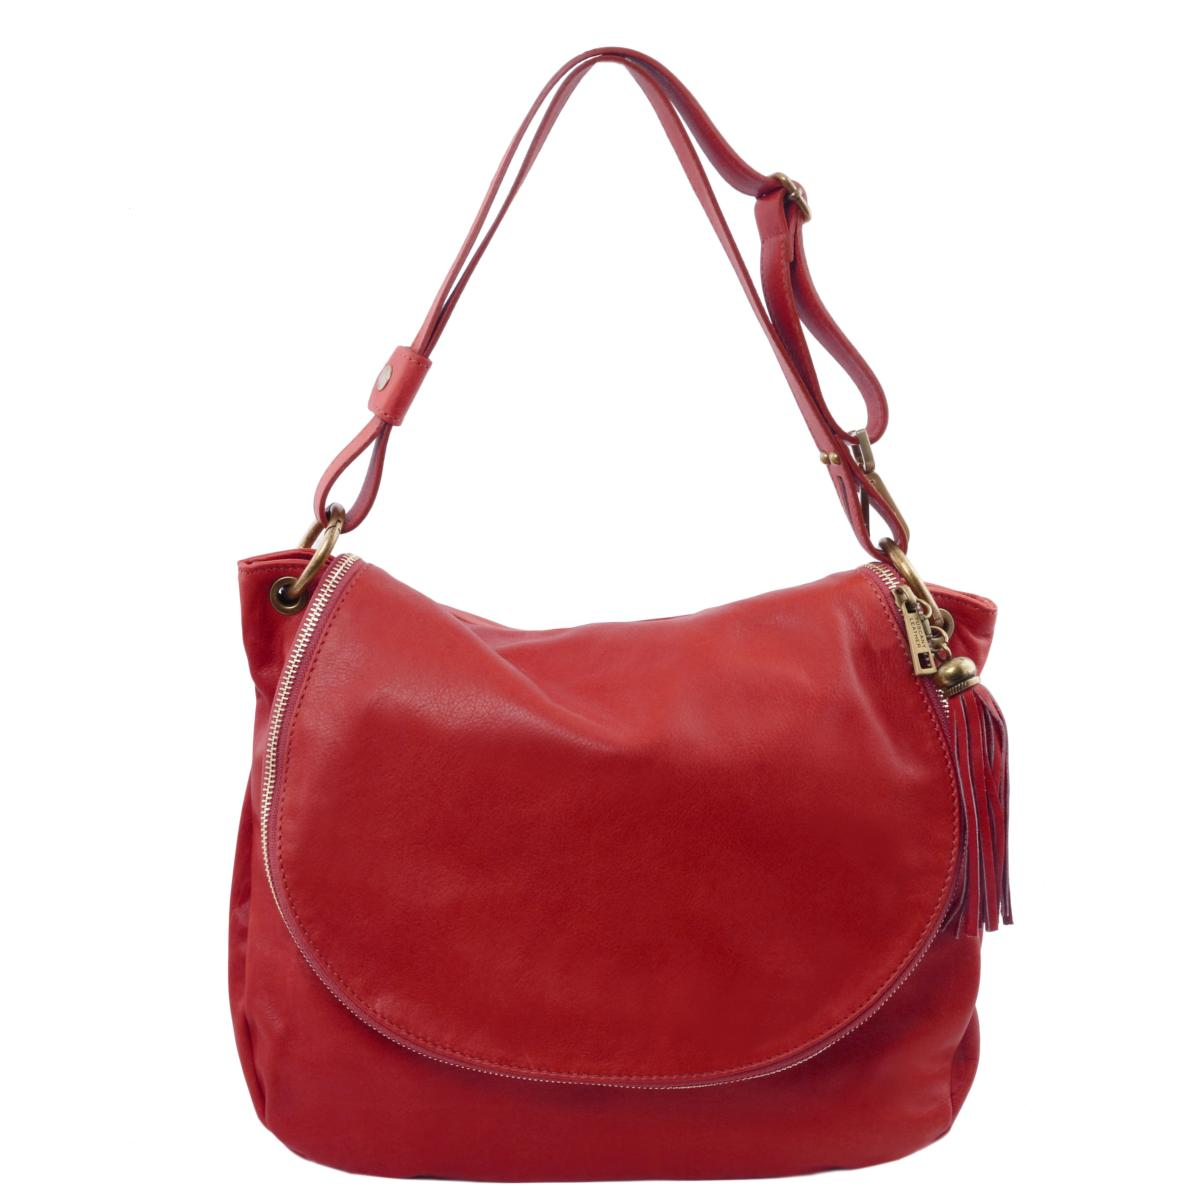 Grand Sac Cuir Besace Femme Rouge -Tuscany Leather-